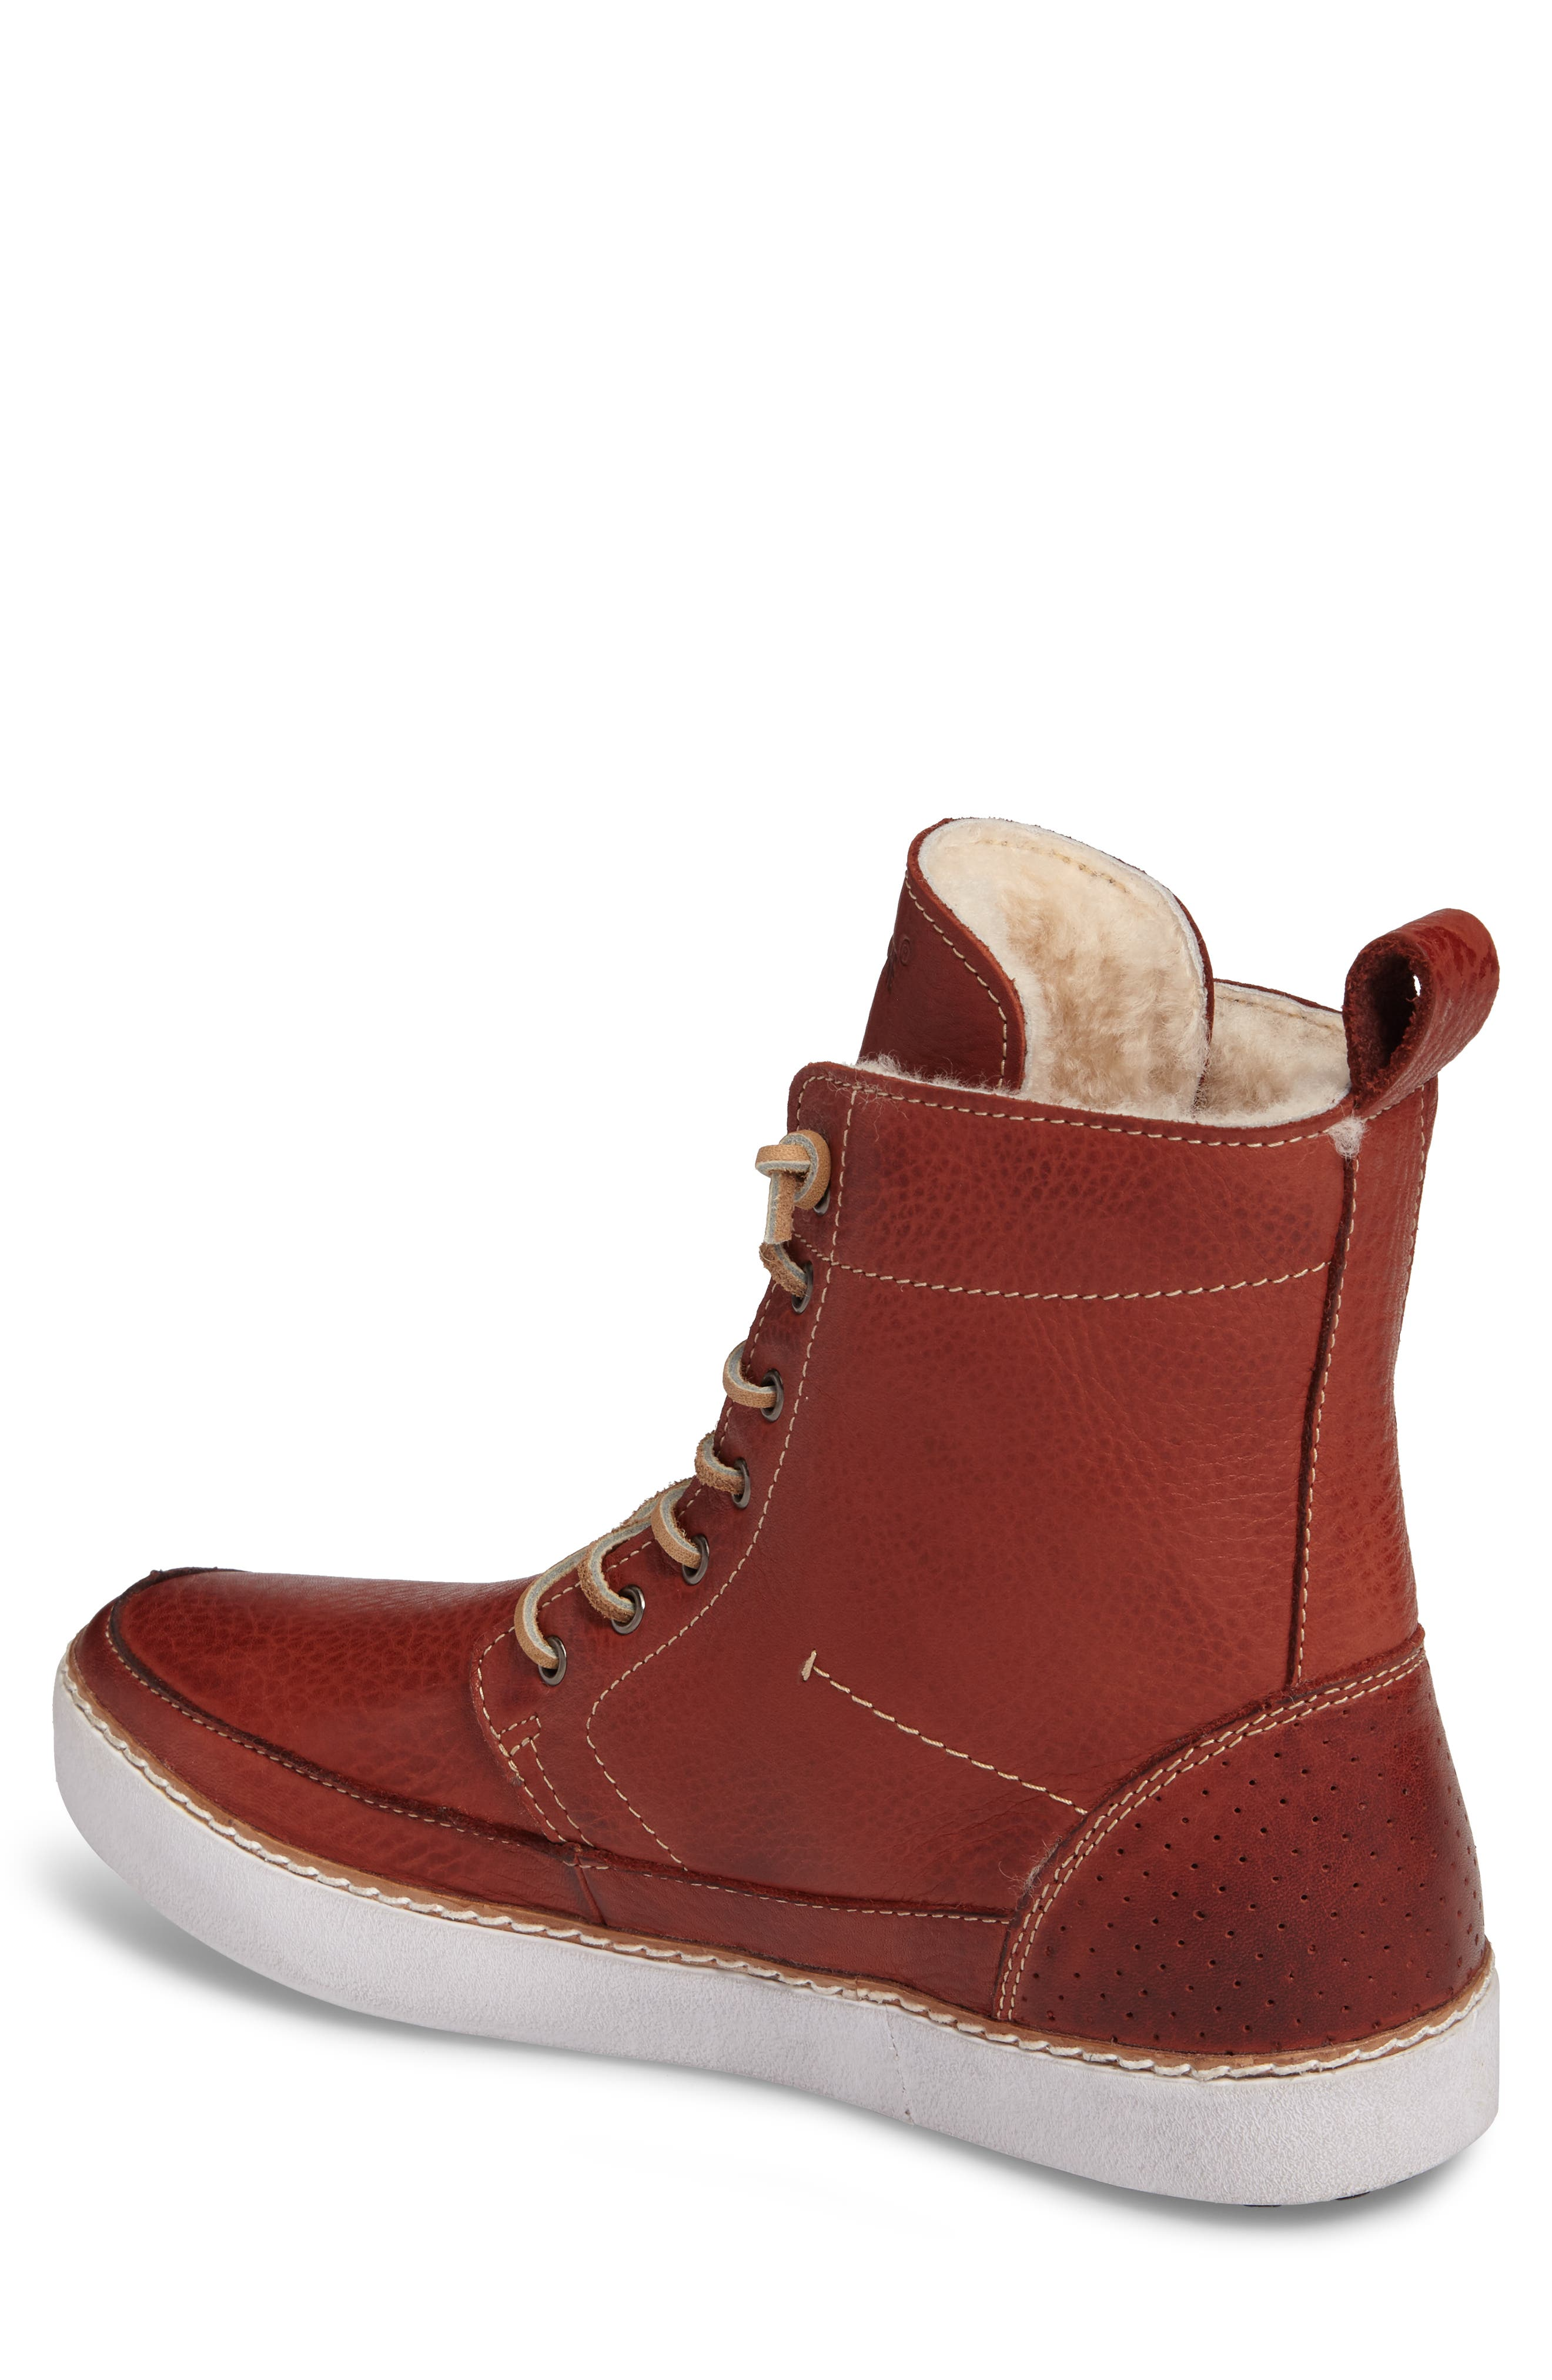 'AM 32' Shearling Lined Boot,                             Alternate thumbnail 2, color,                             200